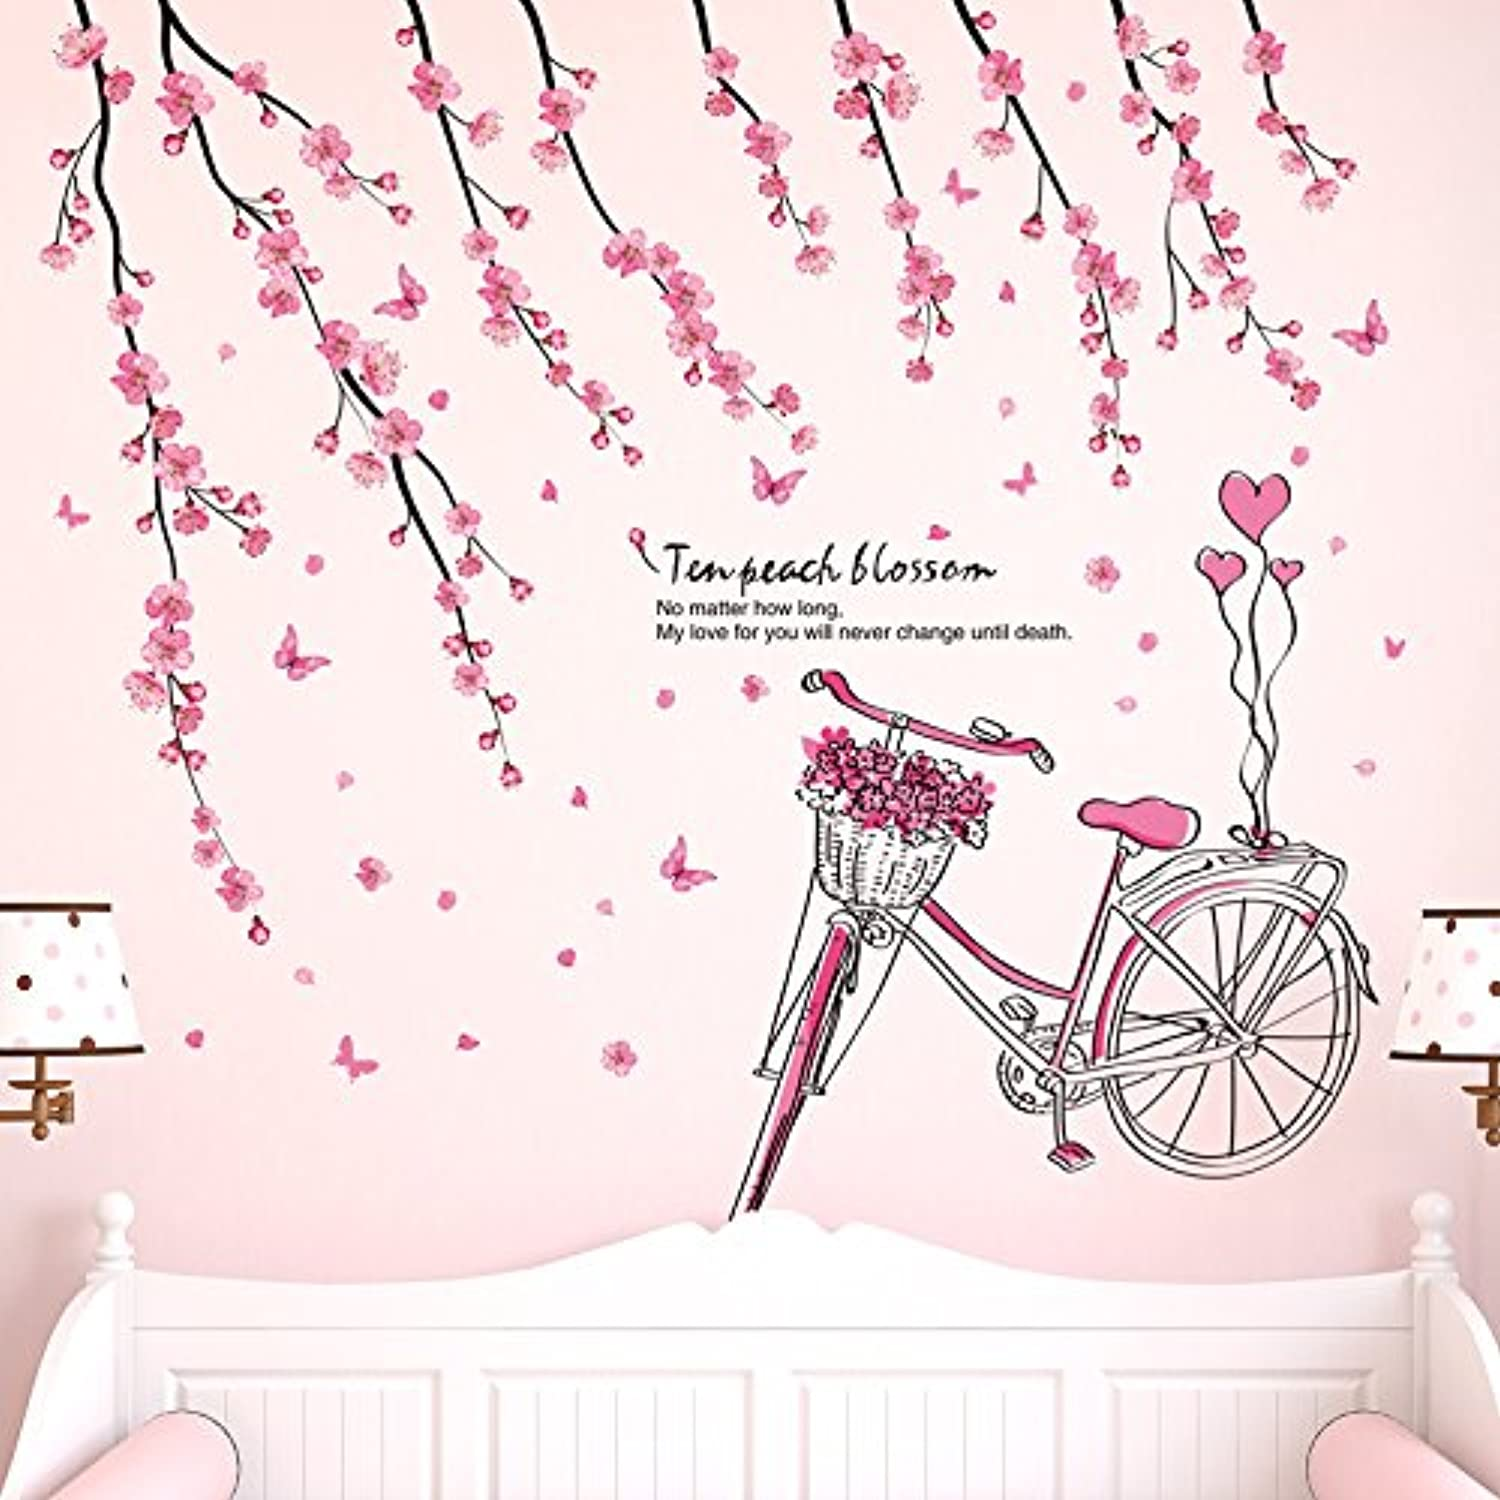 Znzbzt Bedroom Wall Sticker Wall Decoration Wallpaper self Adhesive 10, The Peach Wall Mount